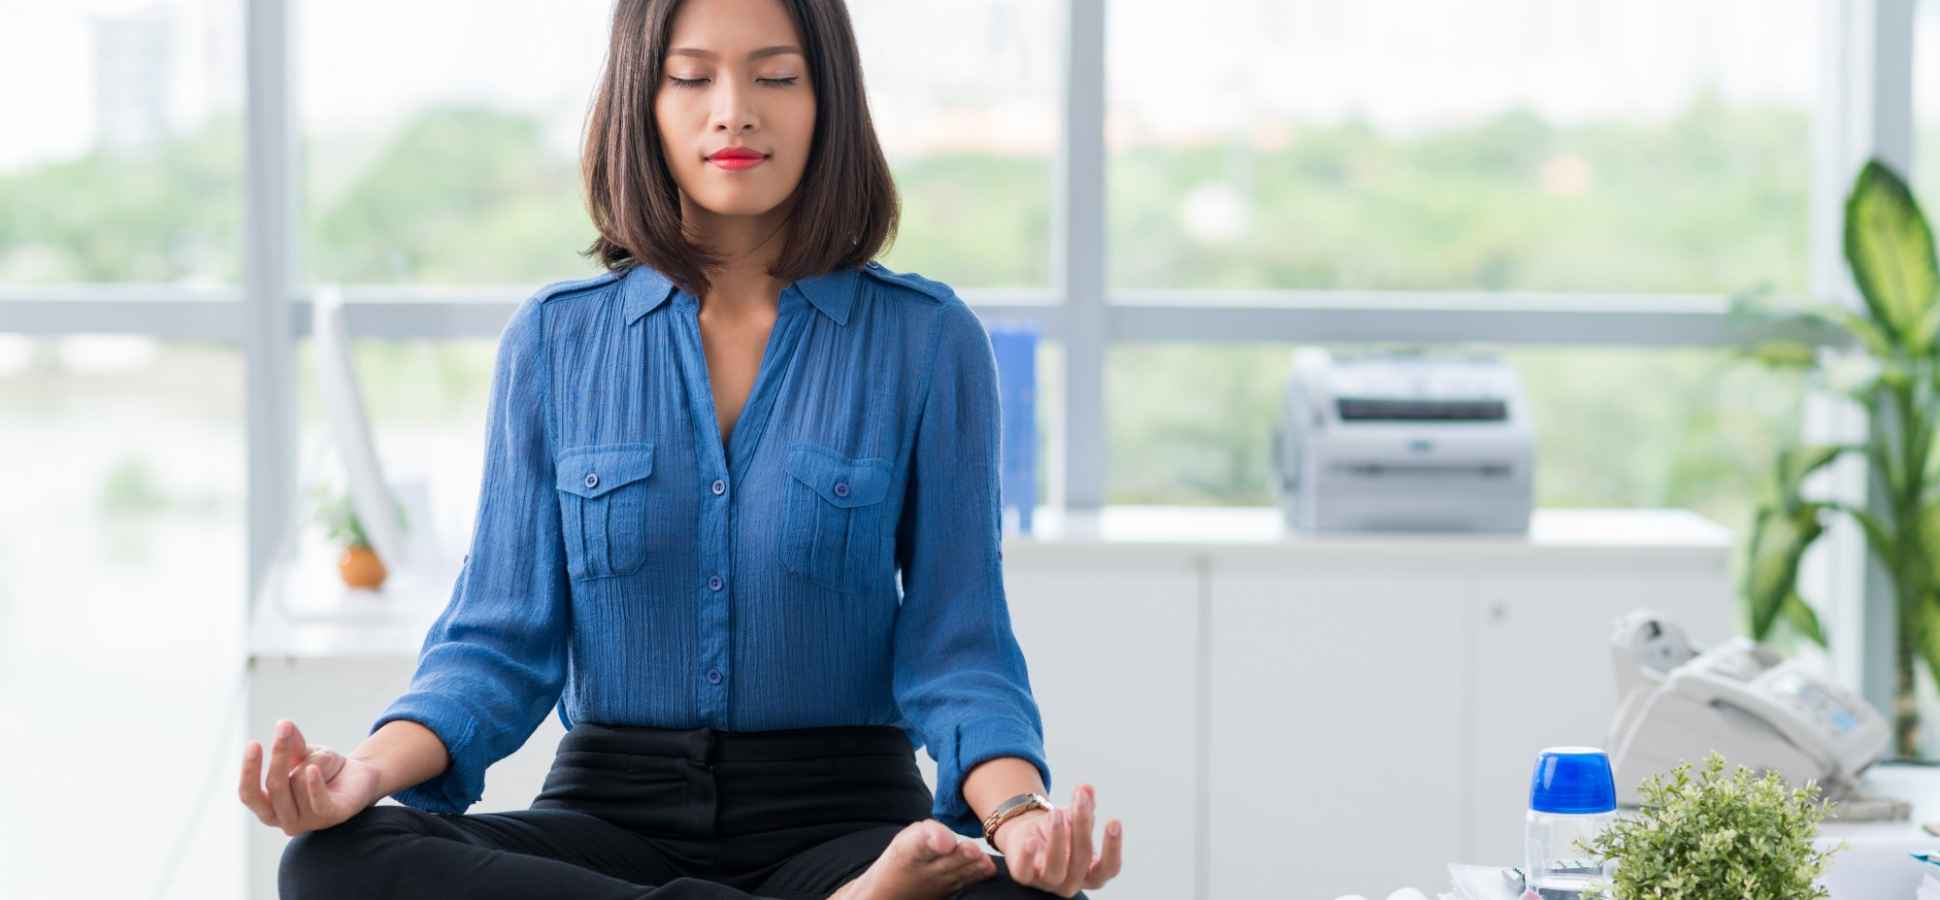 Mindfulness and Happiness in the Workplace